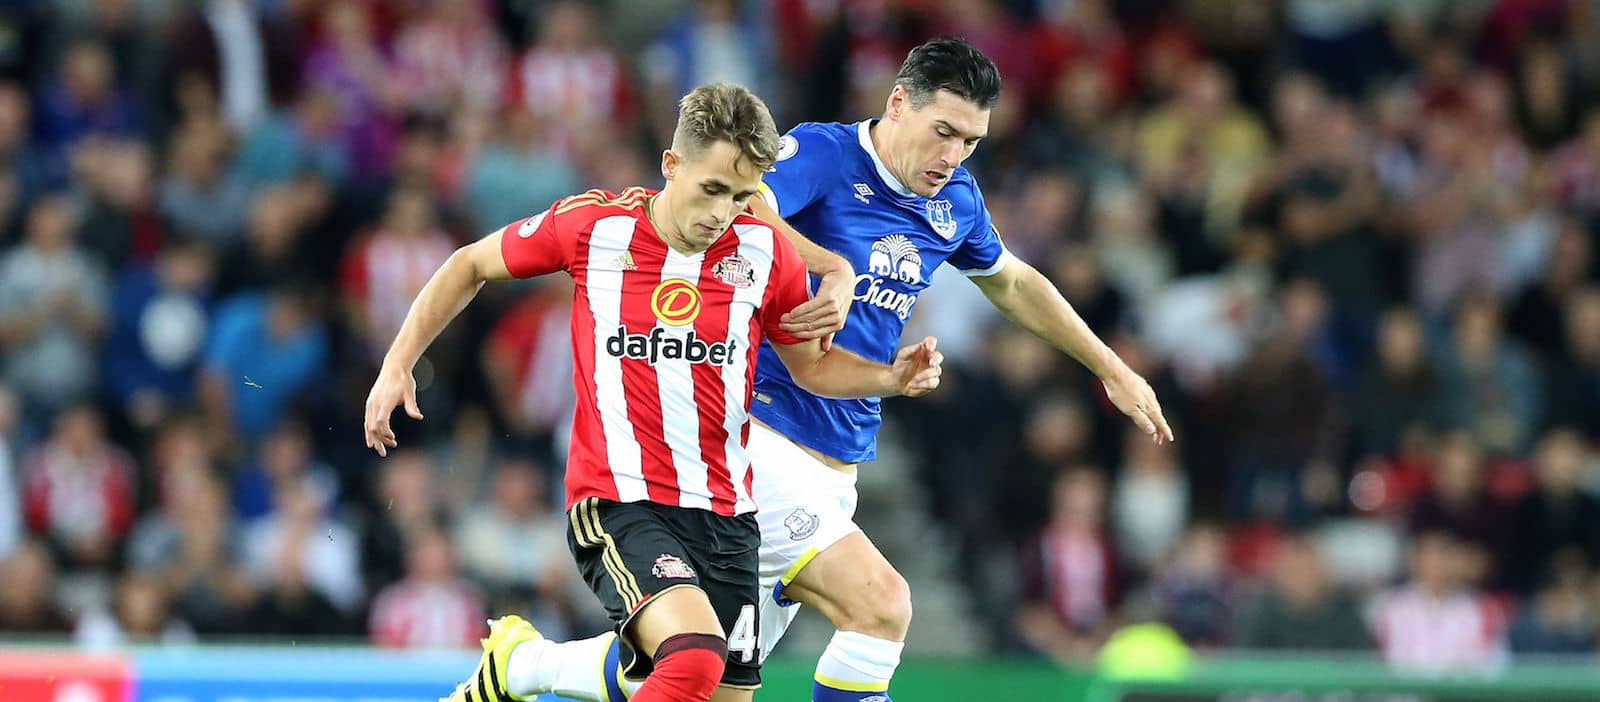 Real Sociedad confirm their interest in Manchester United's Adnan Januzaj